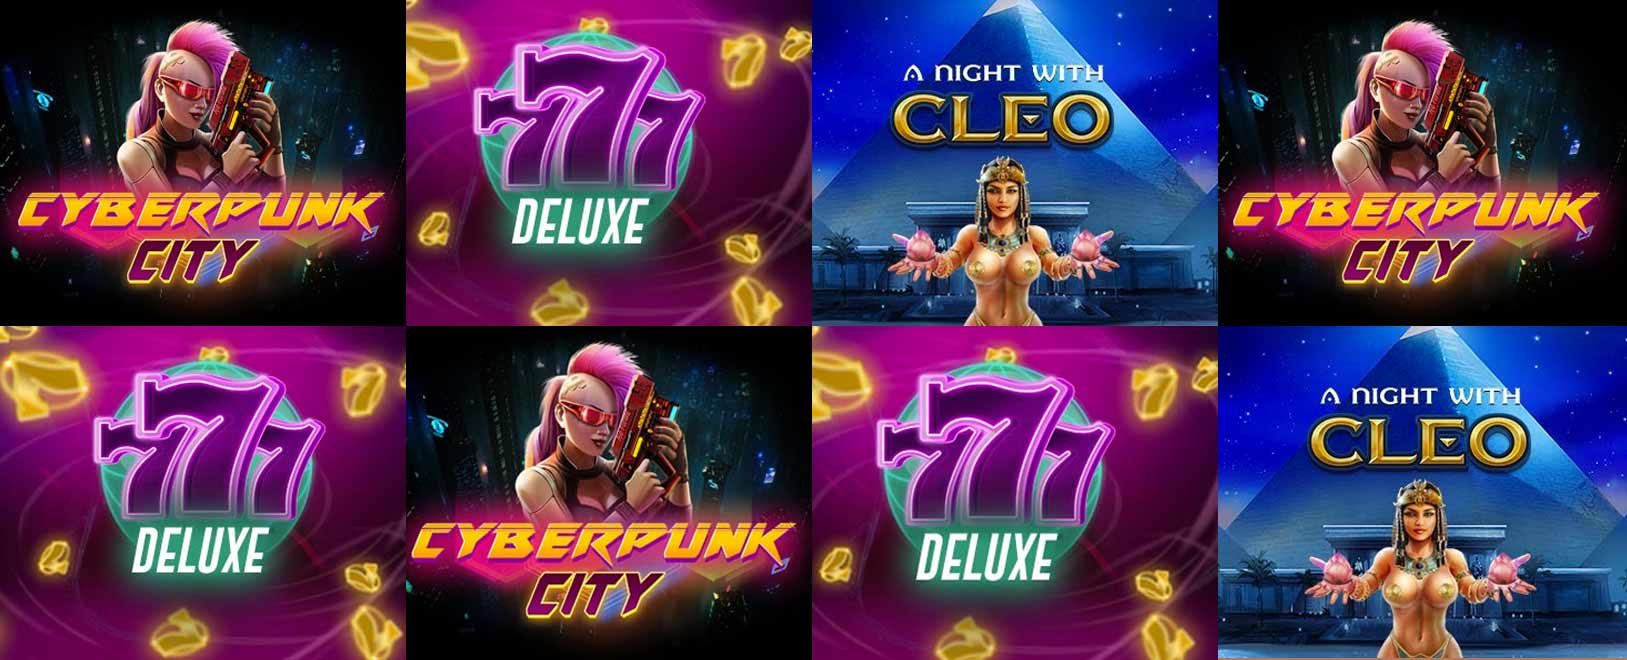 Here are some tips for online gaming at Slots!